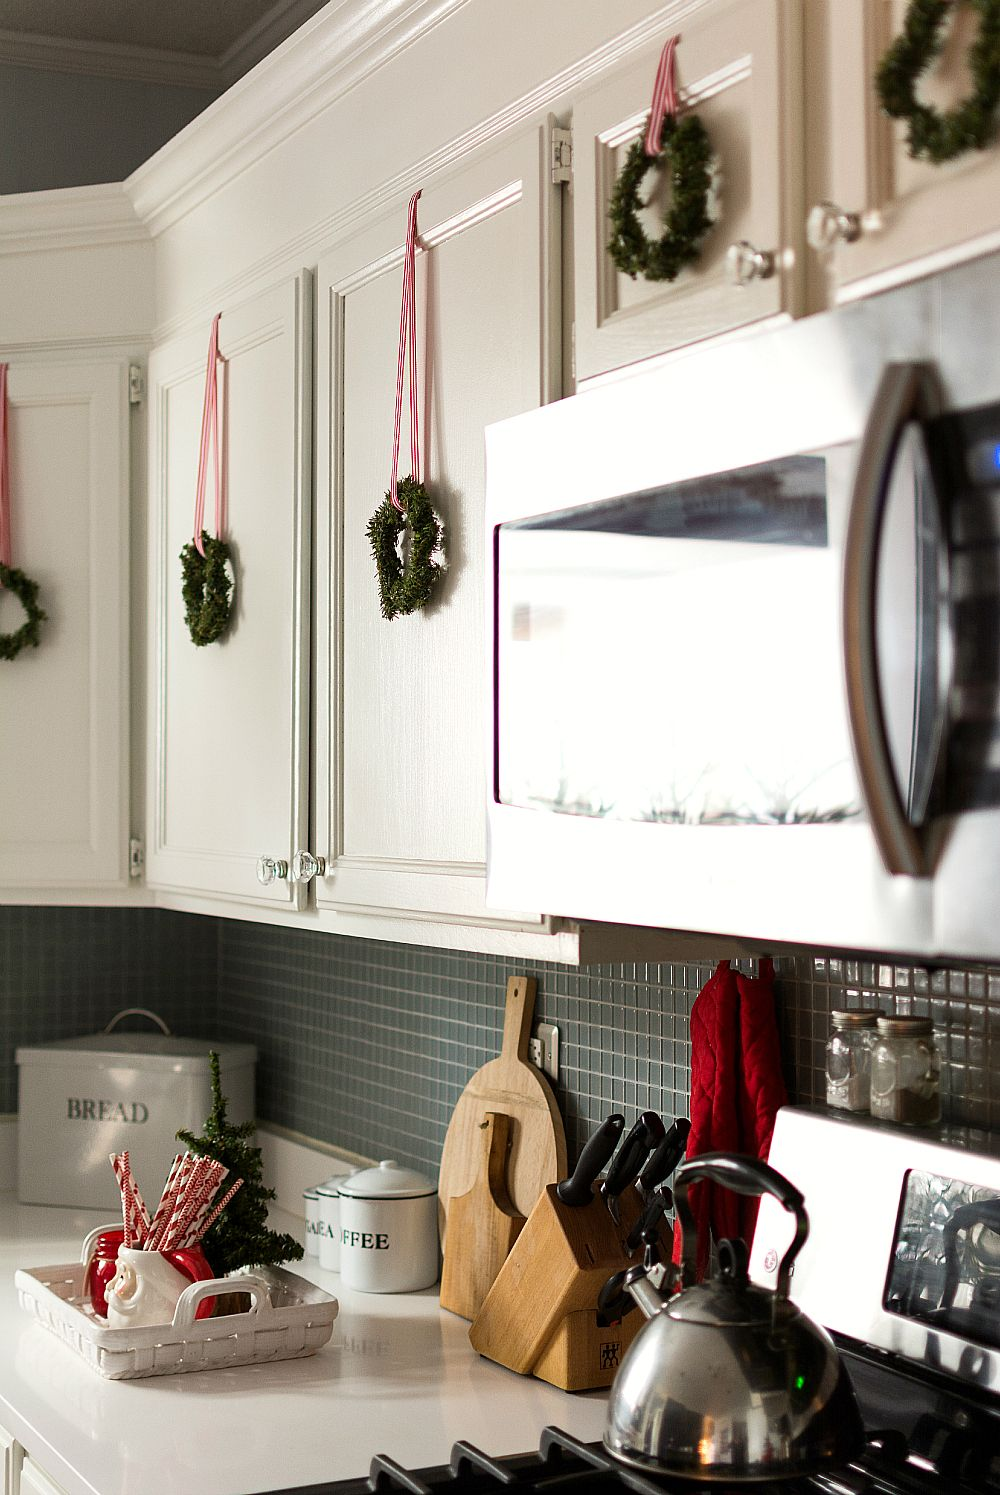 Christmas In The Kitchen Christmas Kitchen Decor Christmas Kitchen Kitchen Xmas Decor